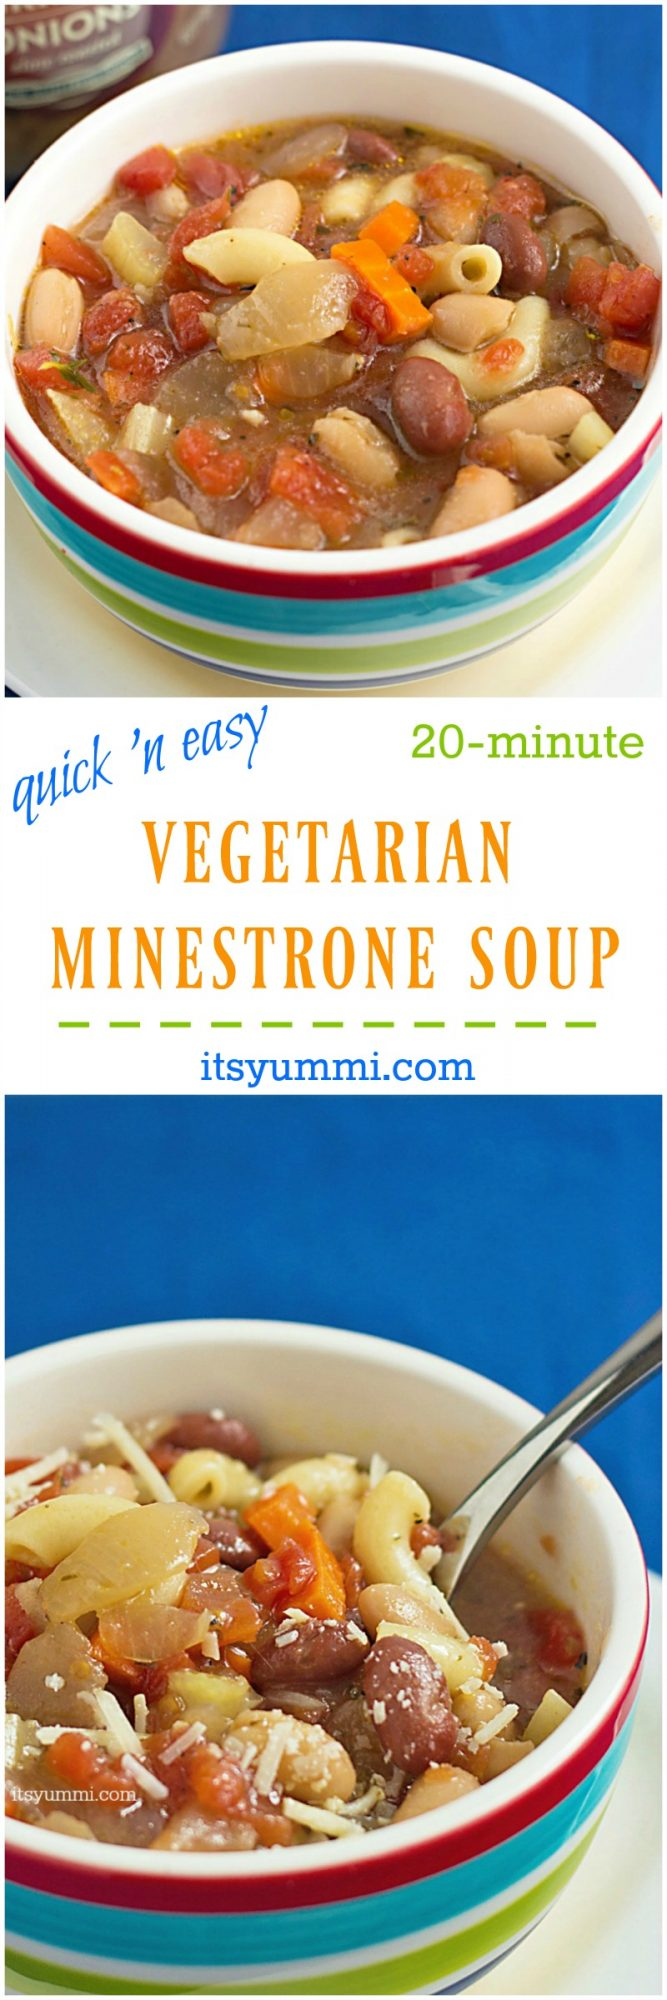 Easy Vegetarian Soup Recipe - The perfect 20-minute, healthy weeknight dinner. Gluten free, low fat, and delicious! Recipe on itsyummi.com